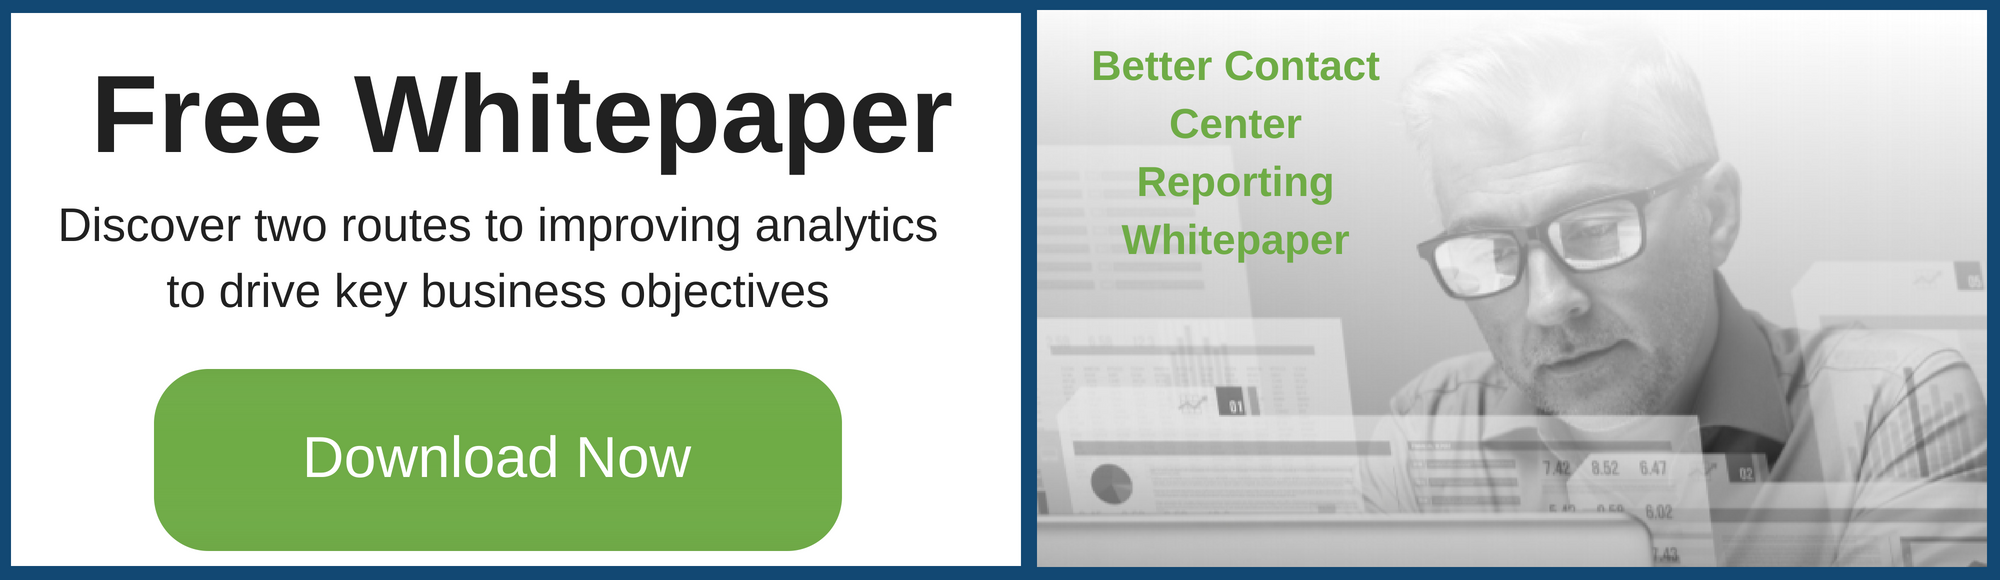 Contact Center Reporting Whitepaper offer man looking at laptop